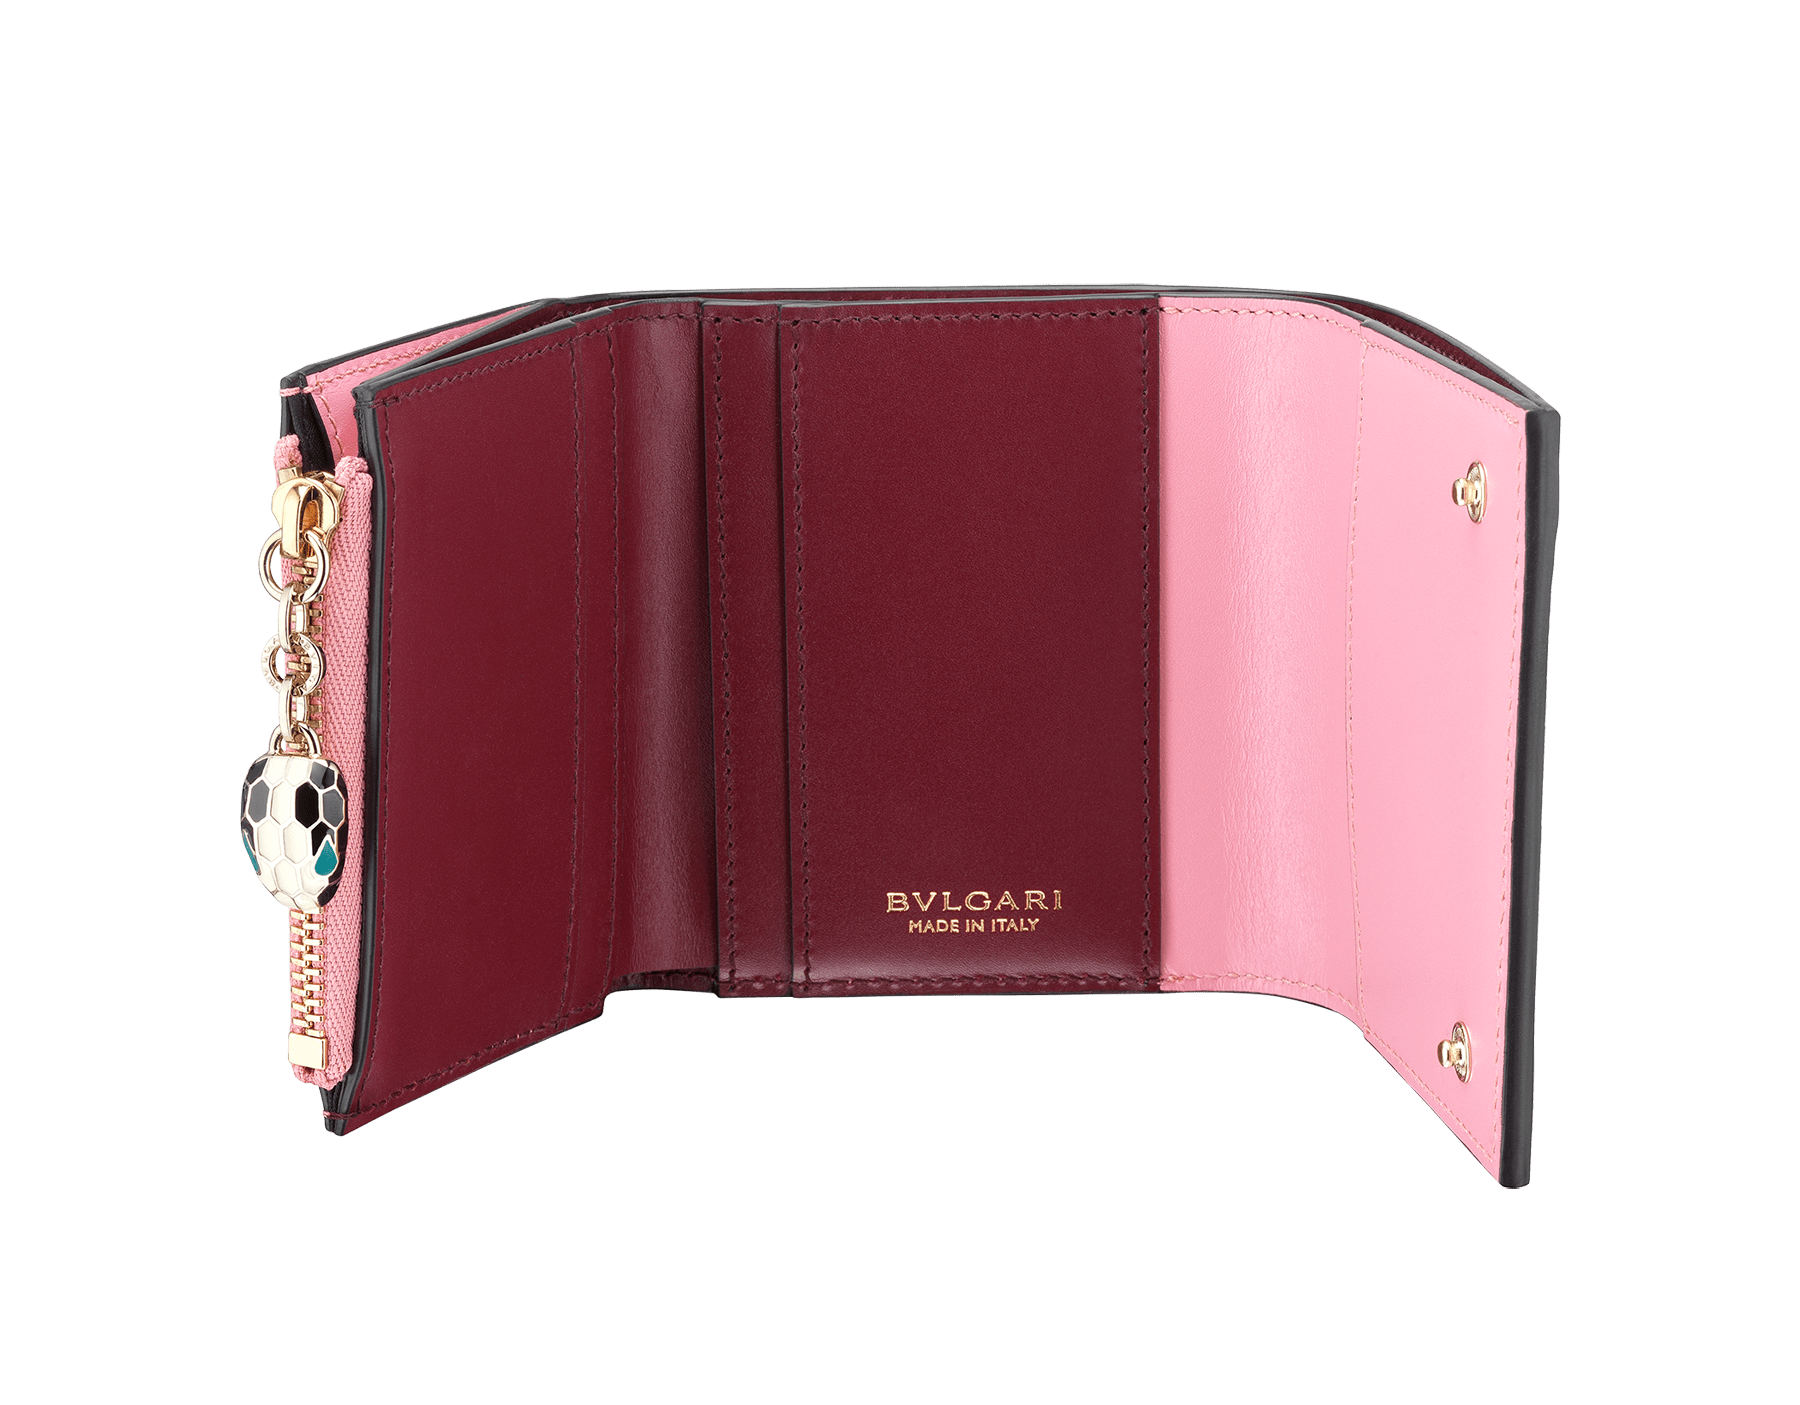 Serpenti Forever super compact wallet in flamingo quartz and roman garnet calf leather. Iconic snakehead zip puller in black and white enamel, with green malachite enamel eyes. 288035 image 2